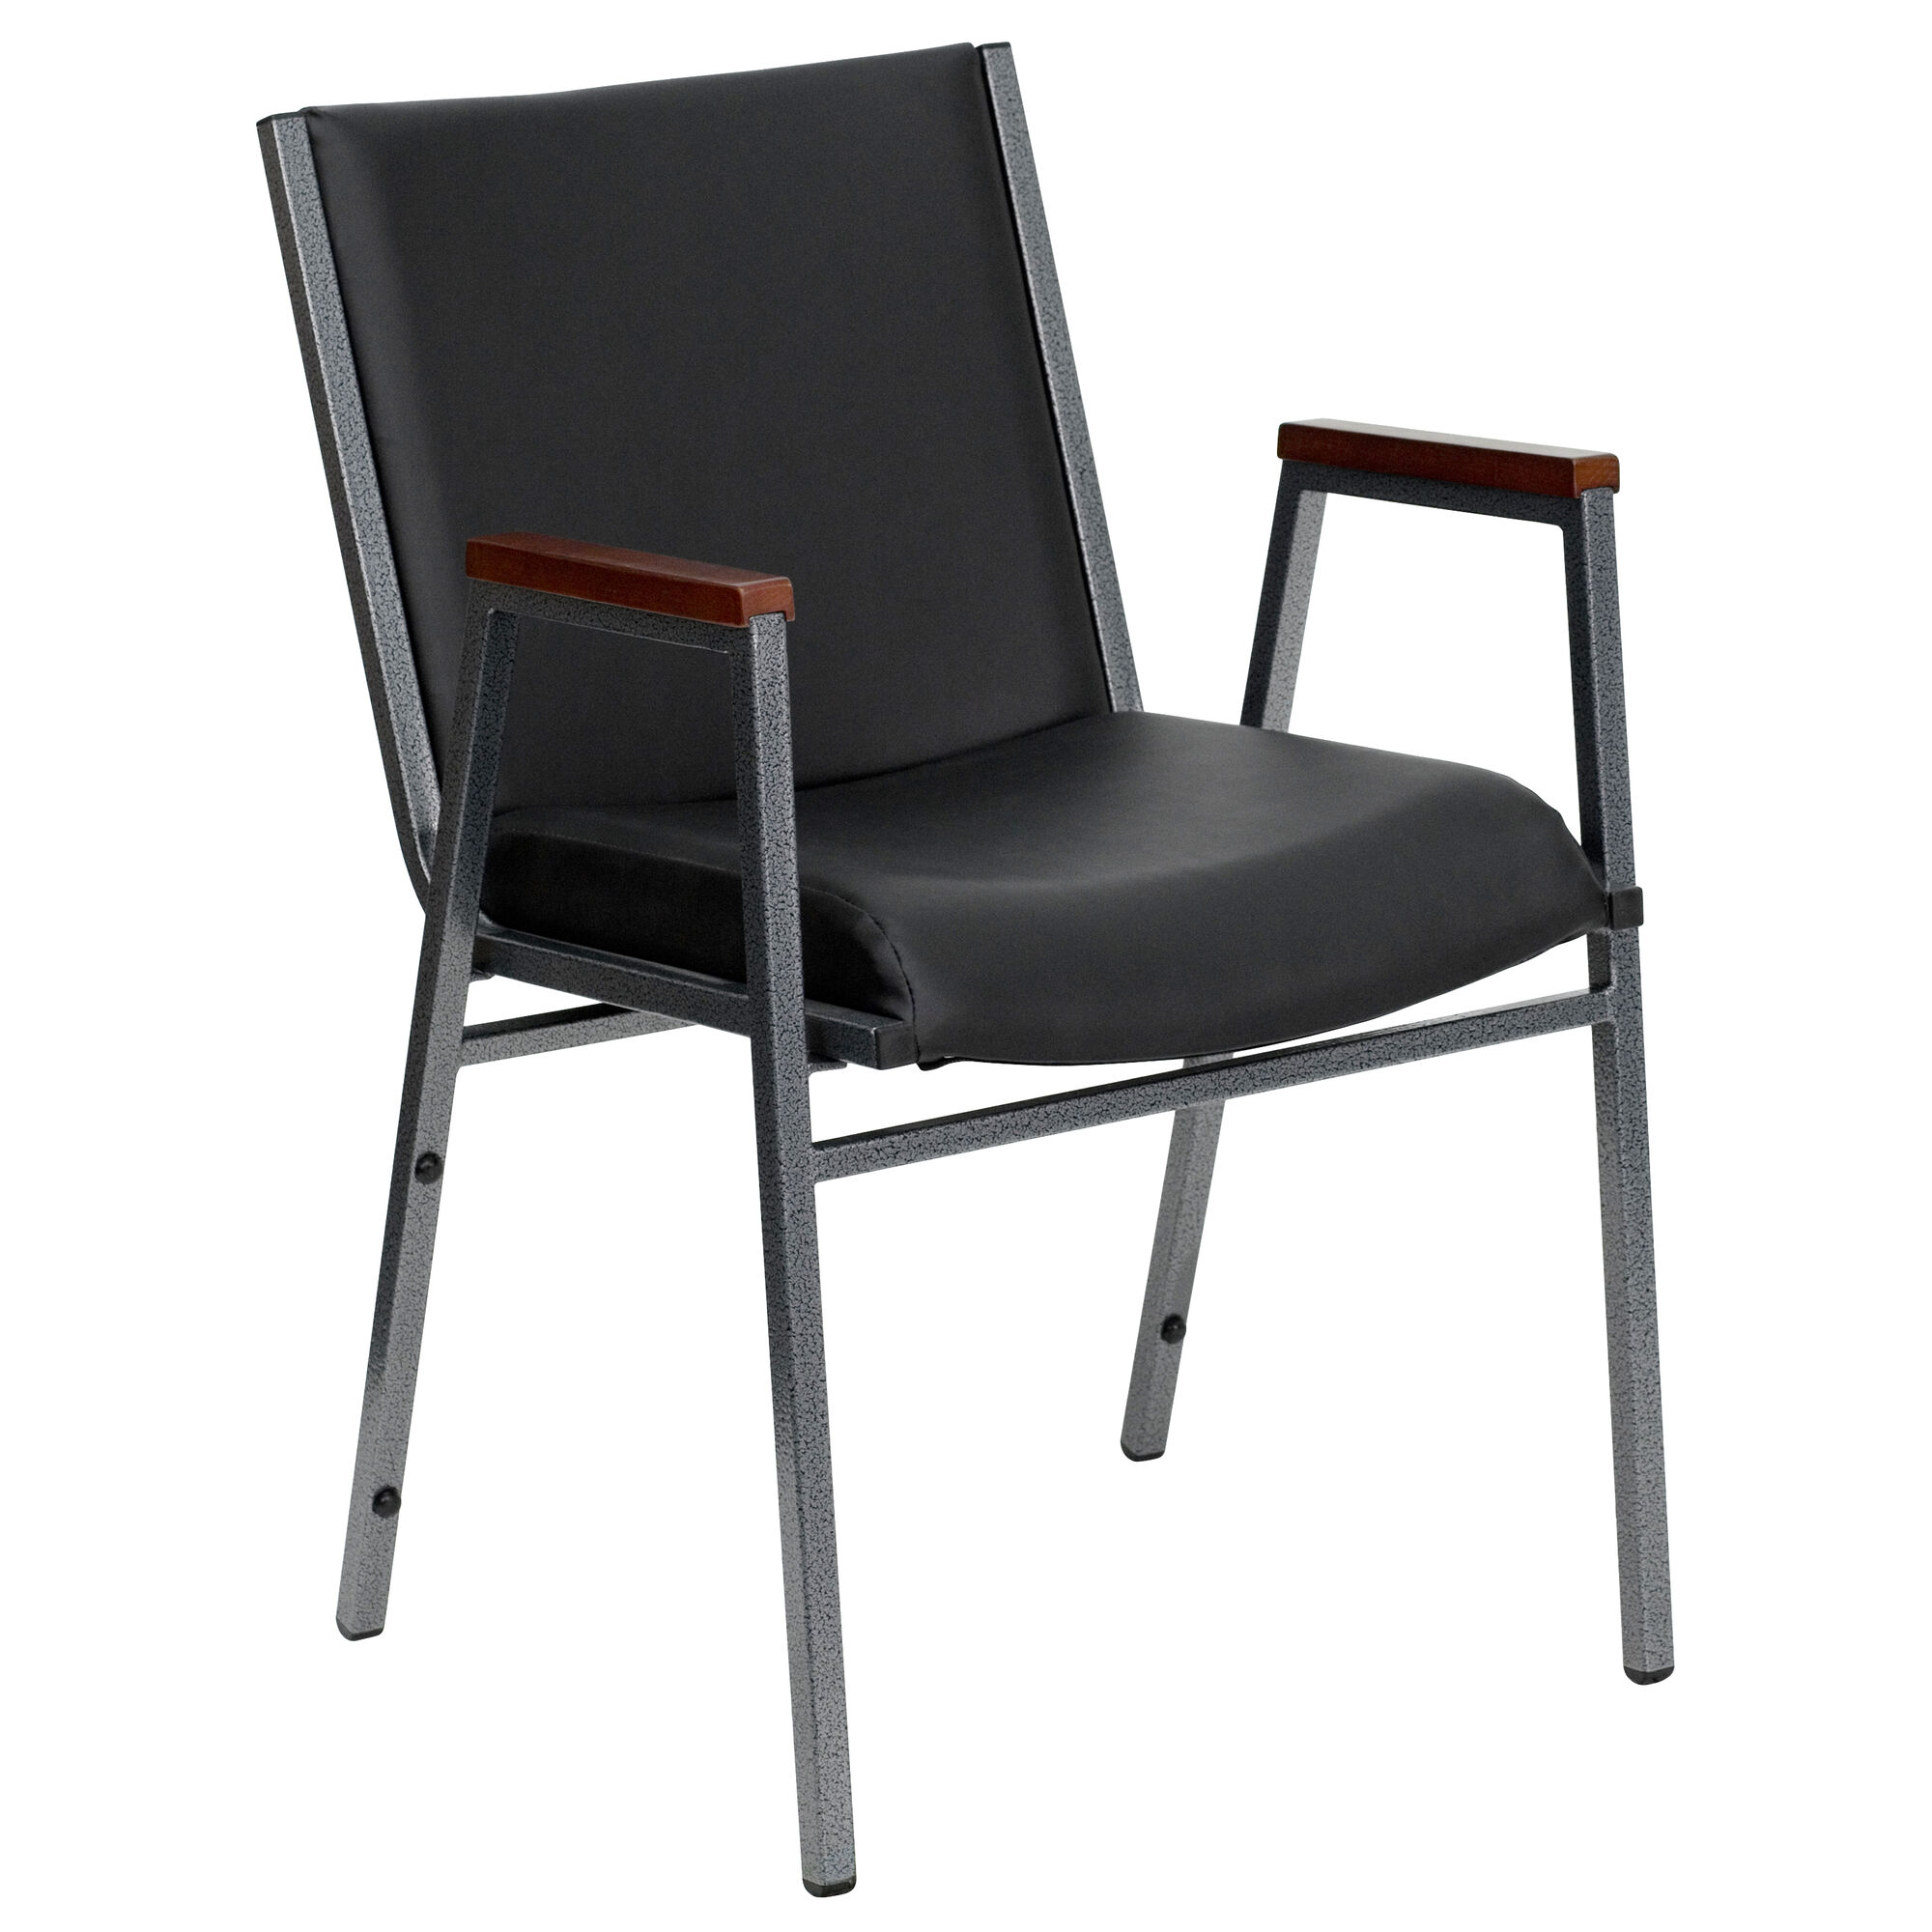 Astonishing Hercules Series Heavy Duty Black Vinyl Stack Chair With Arms Dailytribune Chair Design For Home Dailytribuneorg